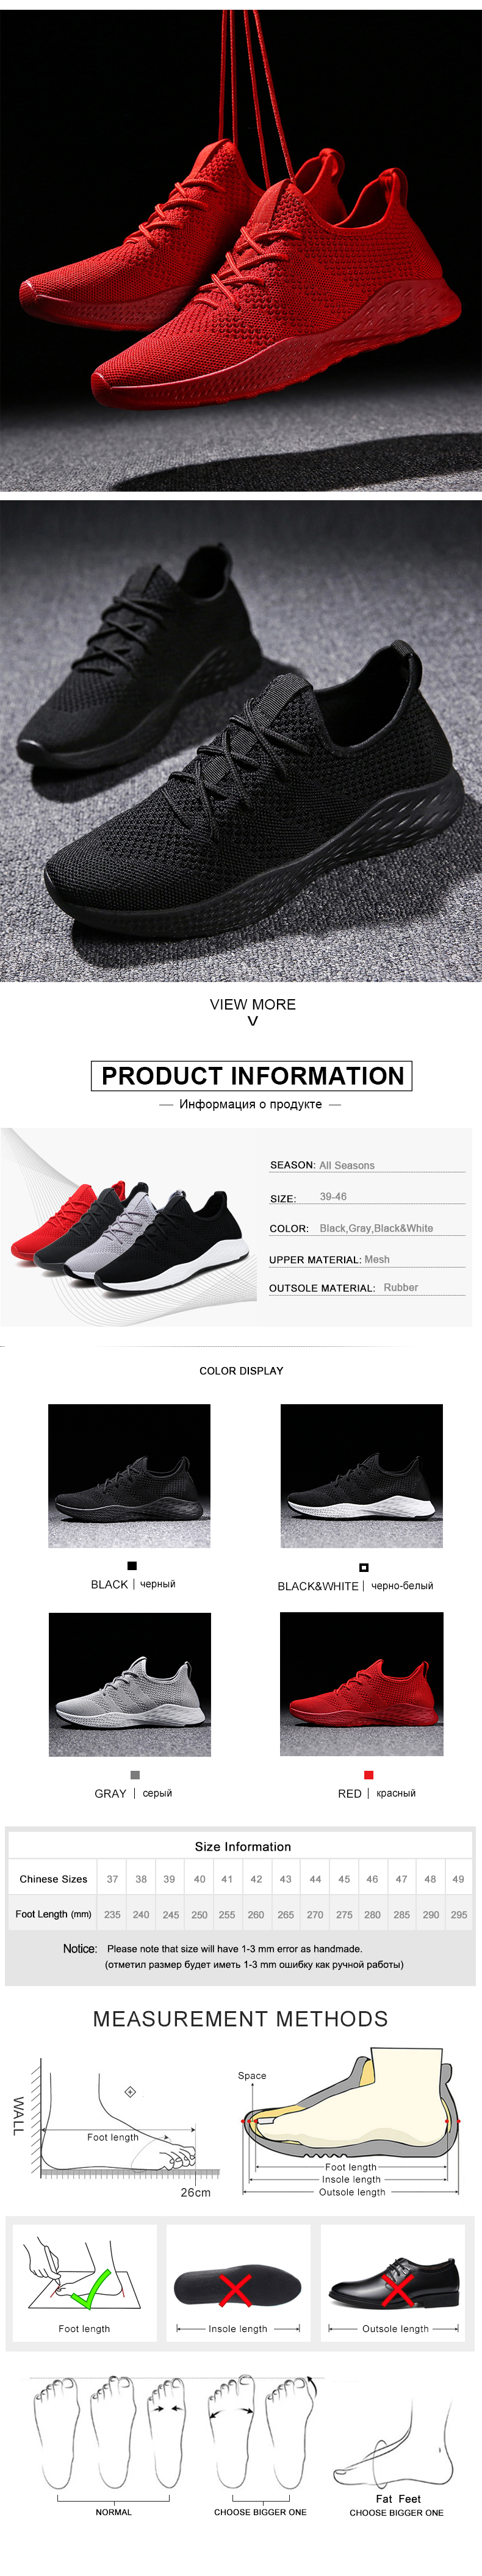 HTB1RvGVX2vsK1Rjy0Fiq6zwtXXau - Men Casual Shoes Men Sneakers Brand Men Shoes Male Mesh Flats Loafers Slip On Big Size Breathable Spring Autumn Winter Xammep